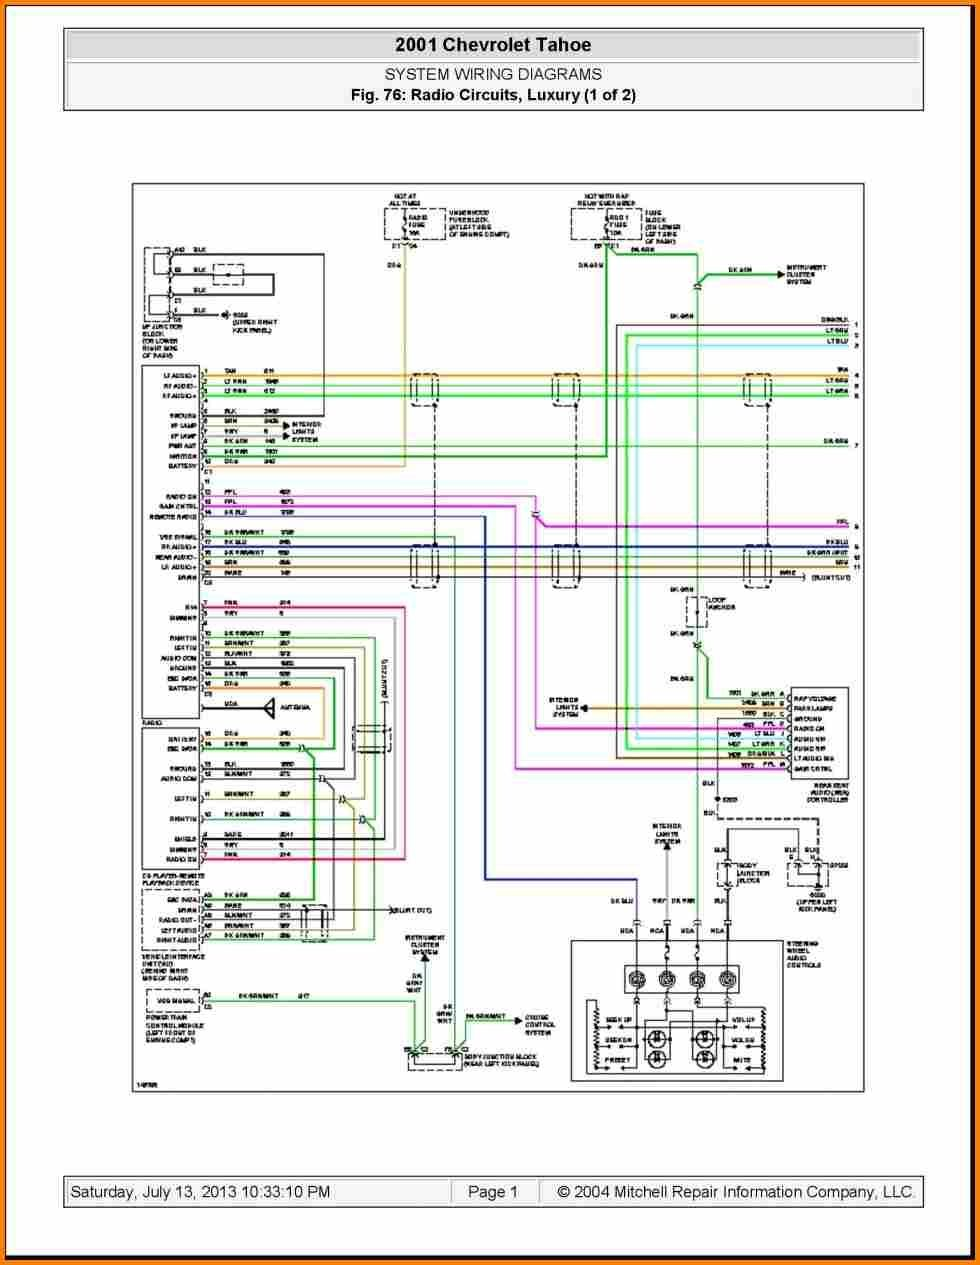 2003 Chevy Impala Radio Wiring Diagram from i.pinimg.com